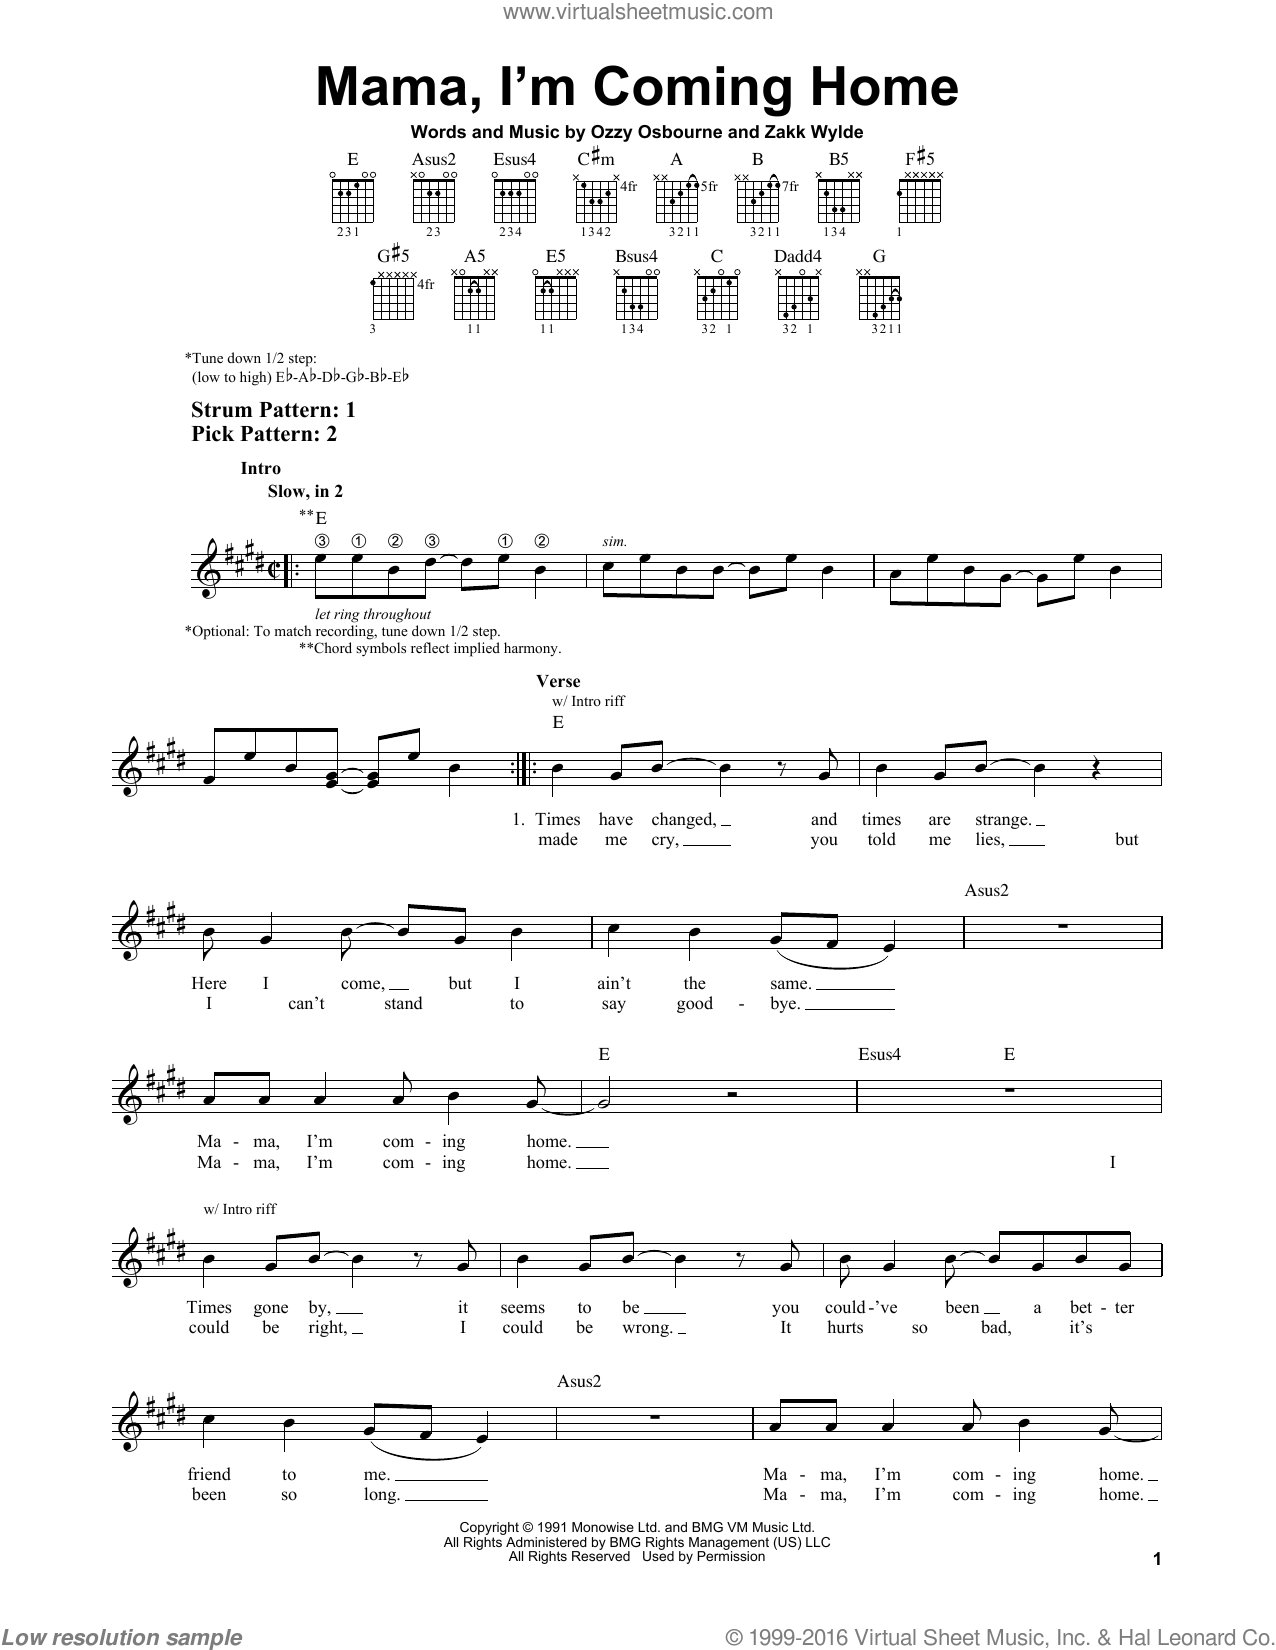 Osbourne - Mama. I'm Coming Home sheet music for guitar solo (chords)